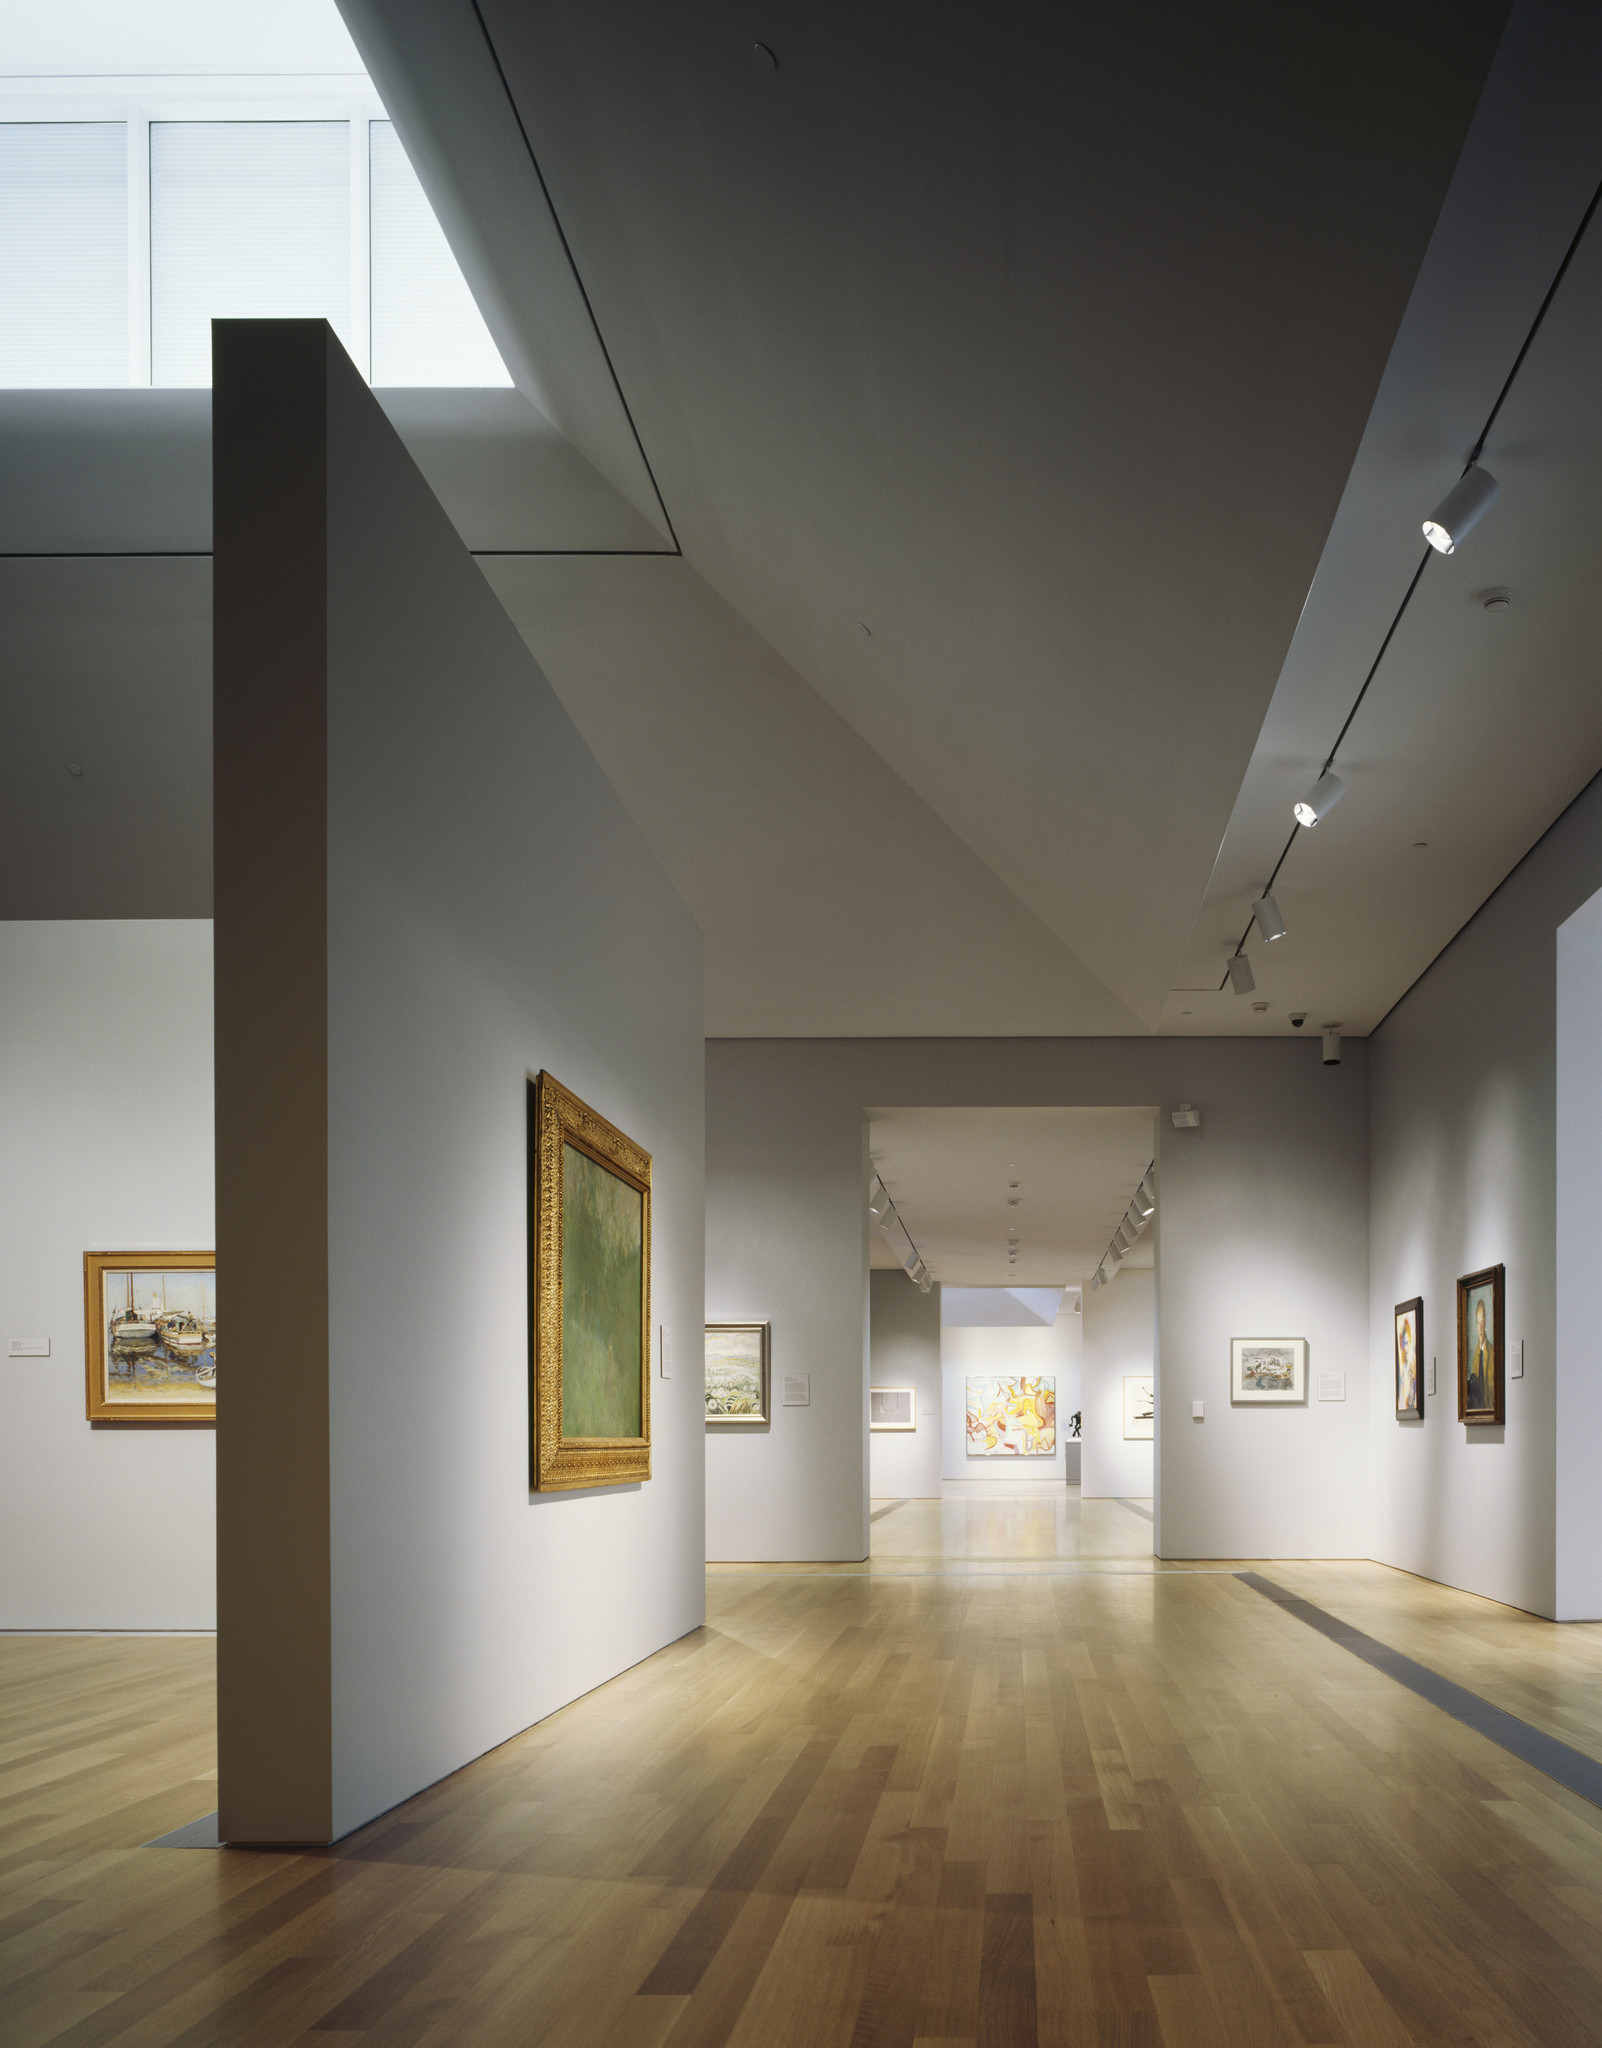 A view of the galleries at the Grand Rapids Art Museum.